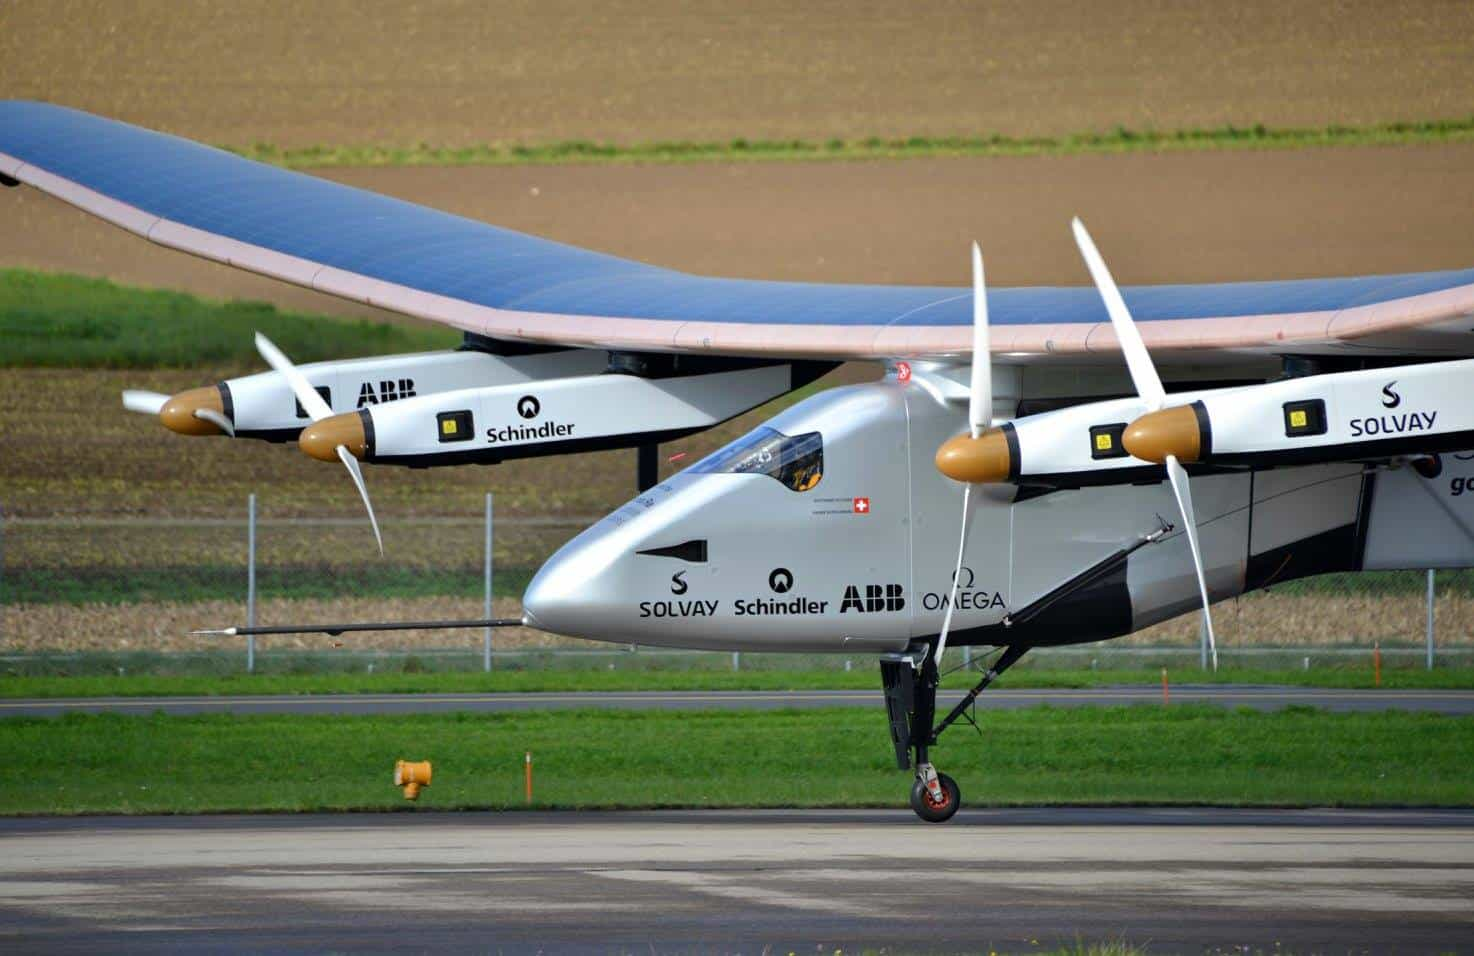 Electrically-powered Airplanes